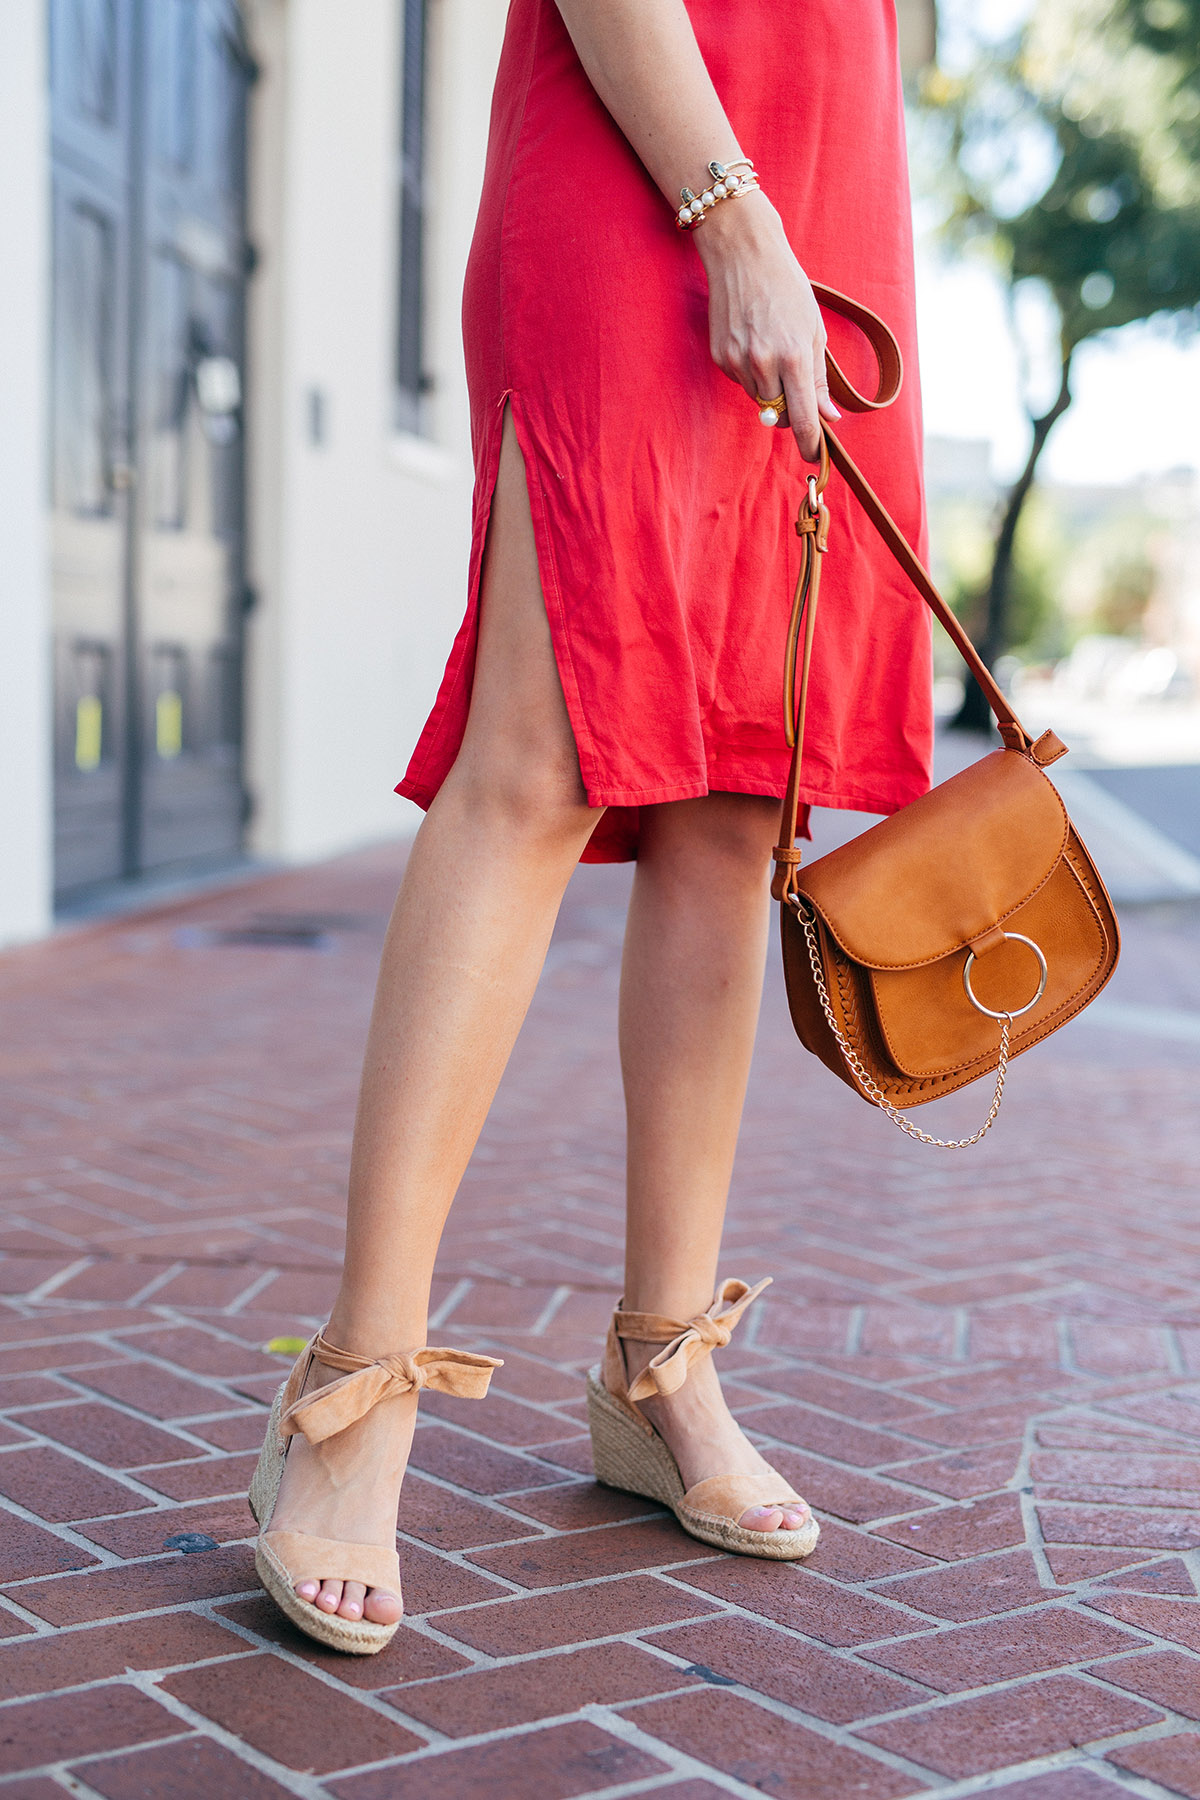 The everyday espadrille + the classic slip dress